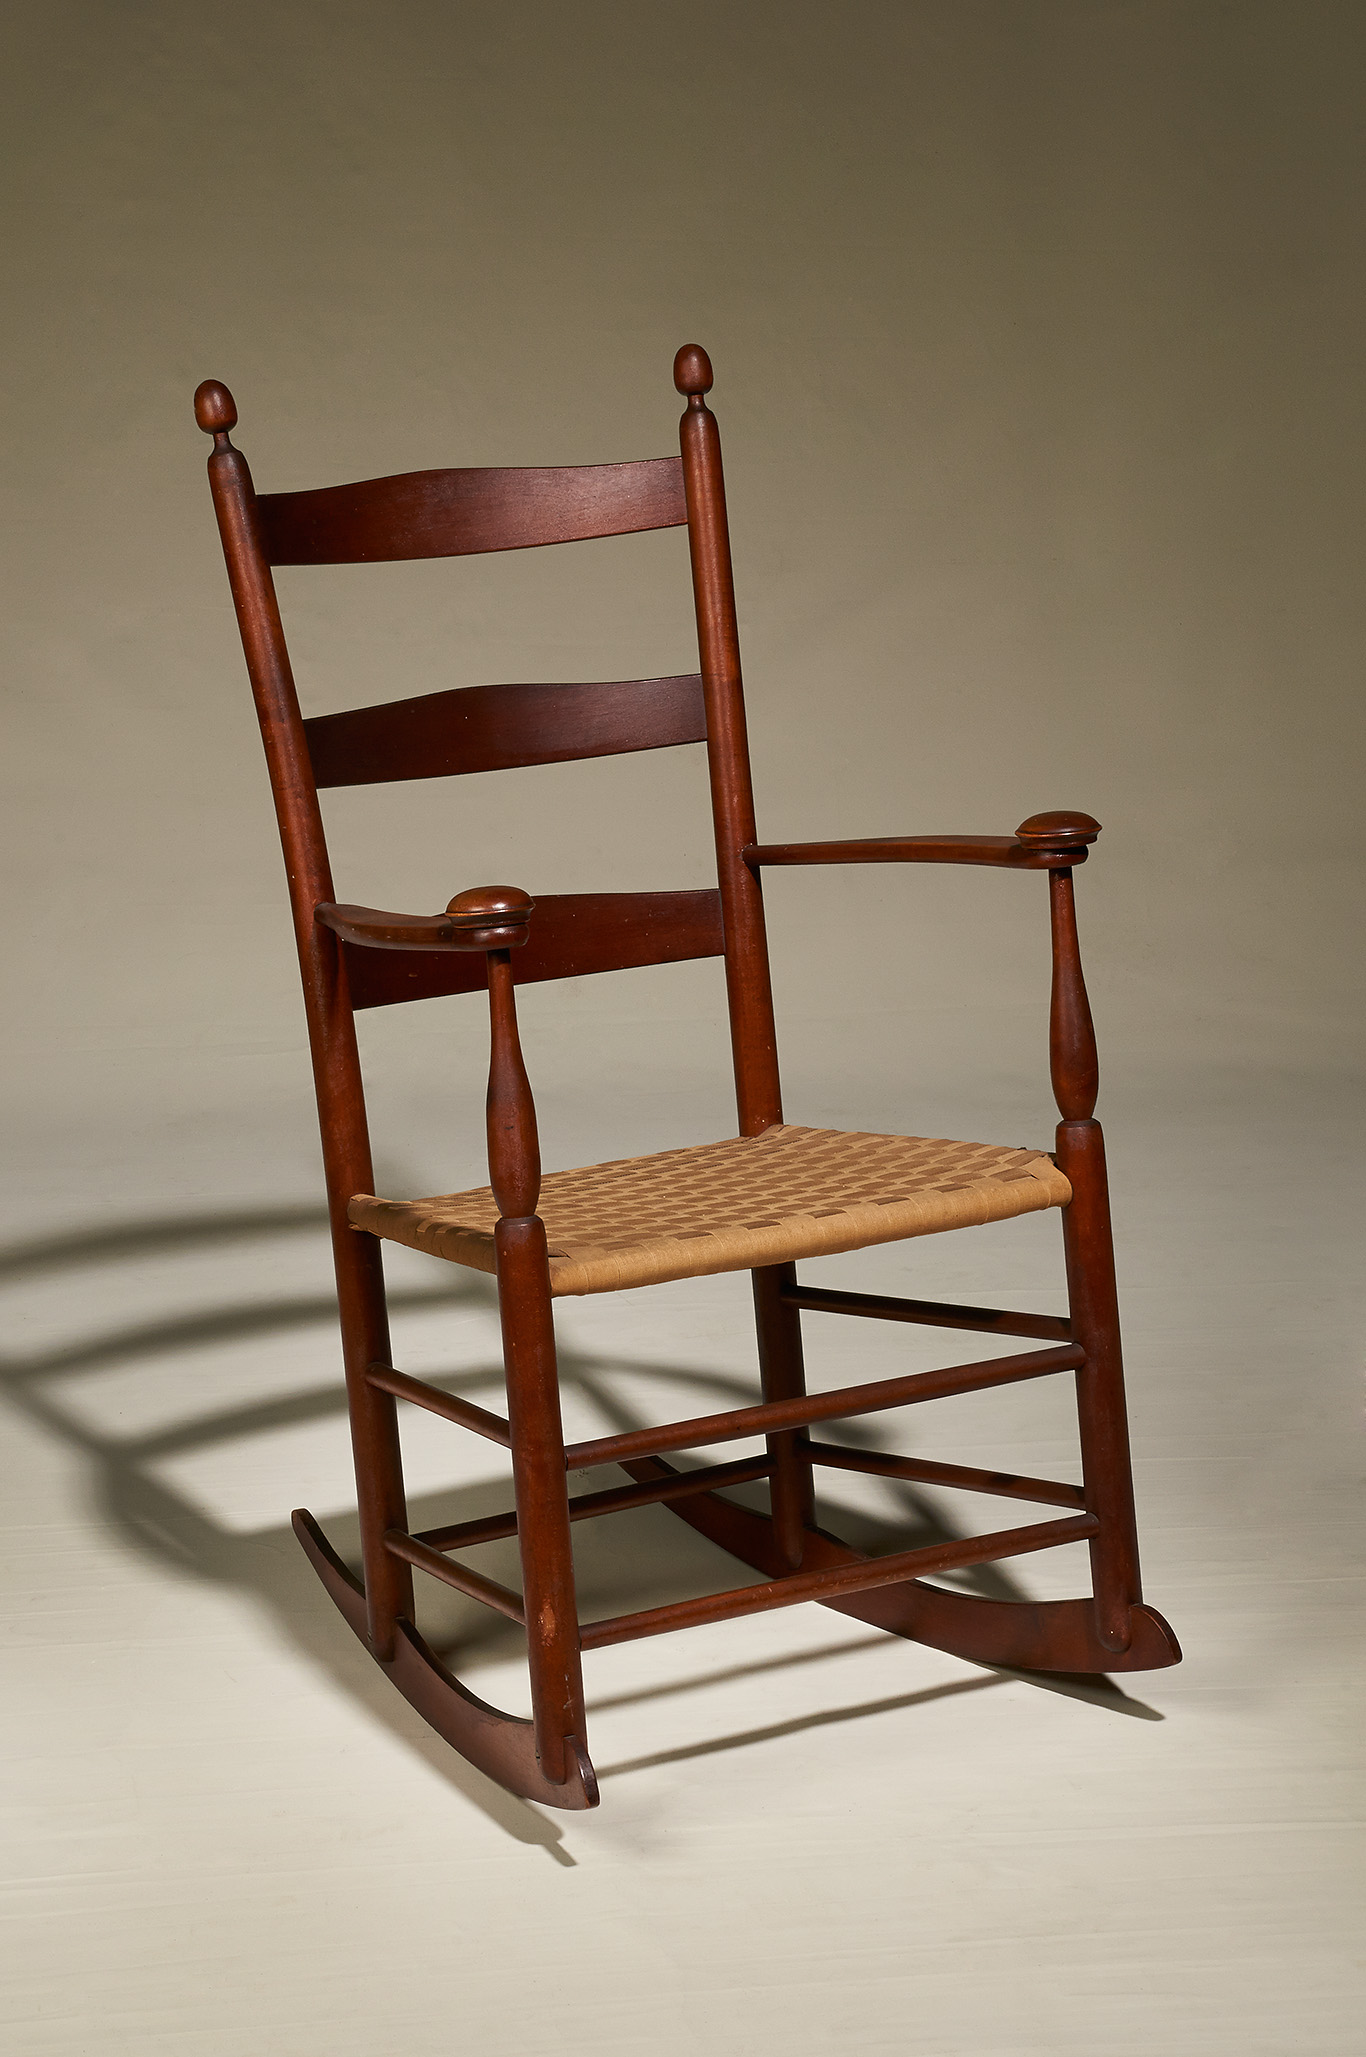 antique child rocking chair harley davidson table and chairs shaker childs olde hope antiques